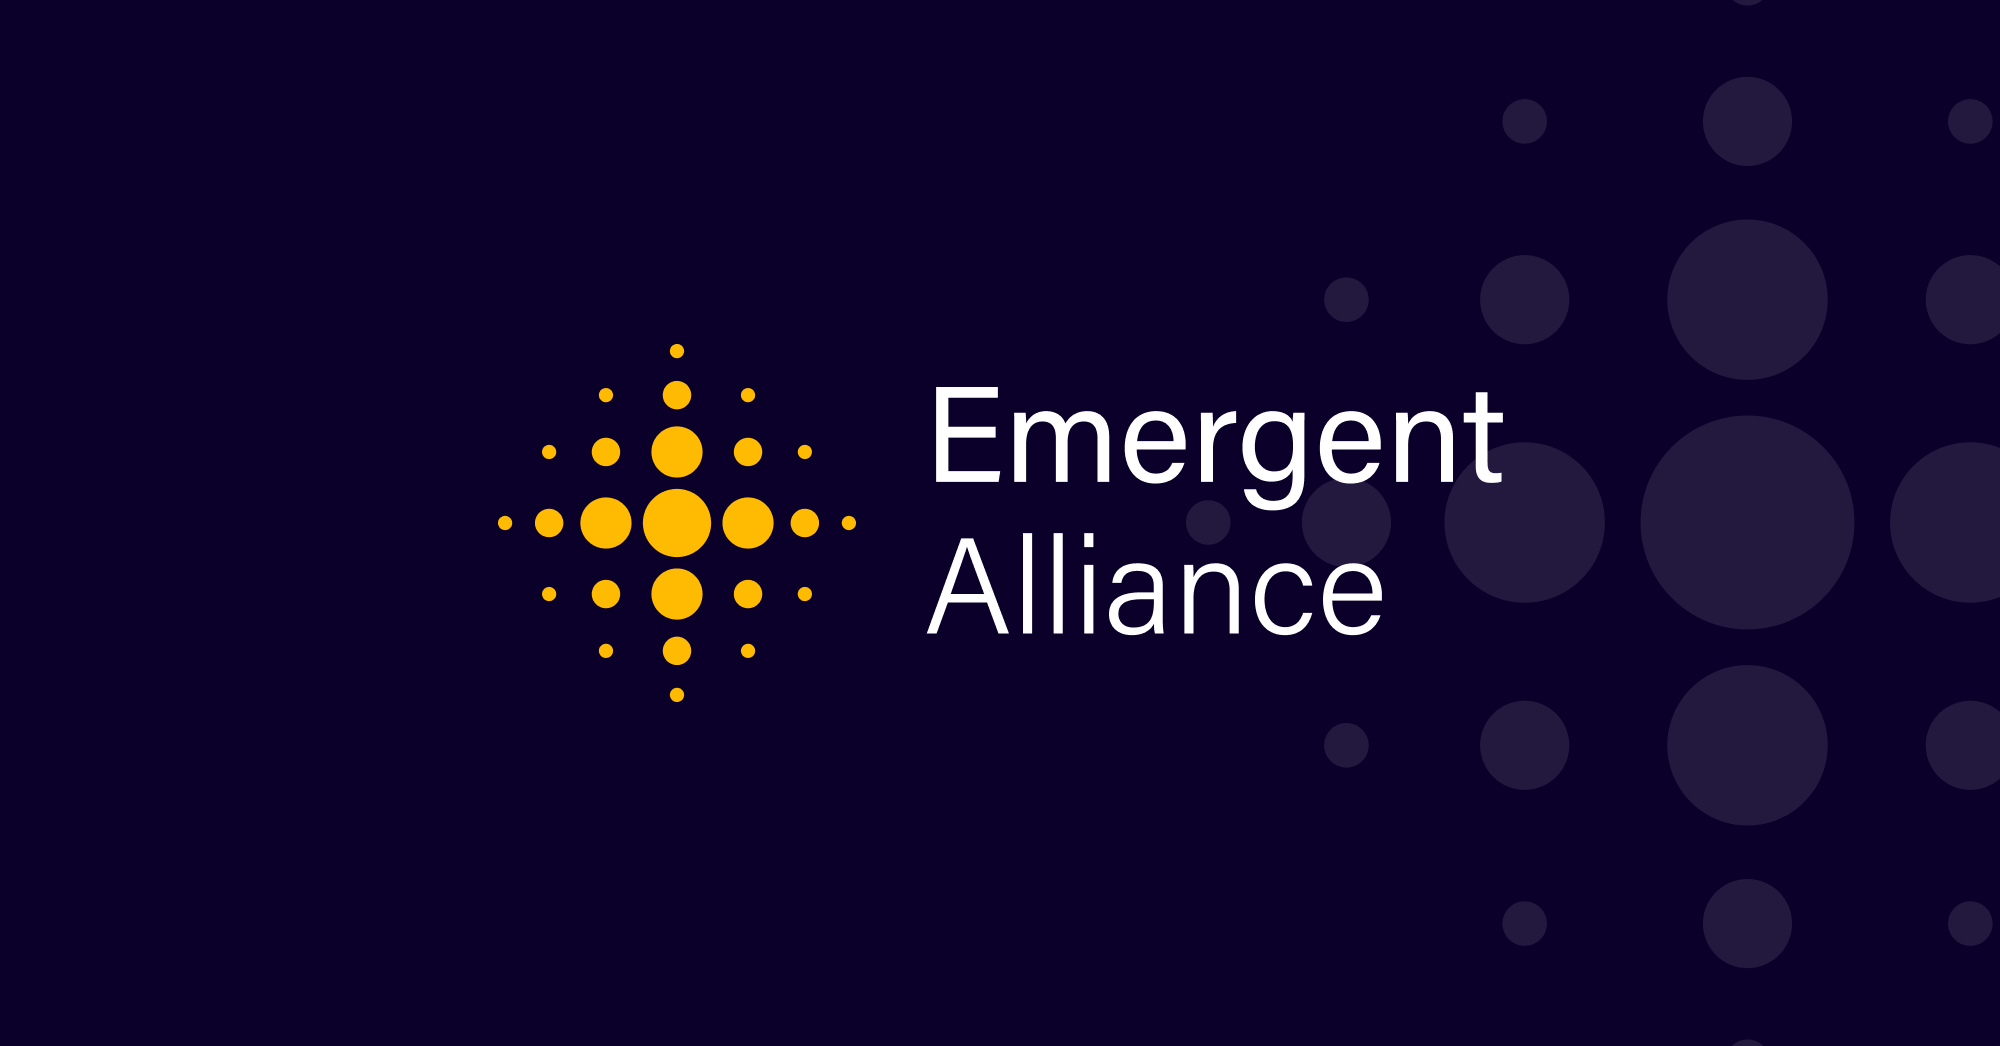 A new direction for the Emergent Alliance main image